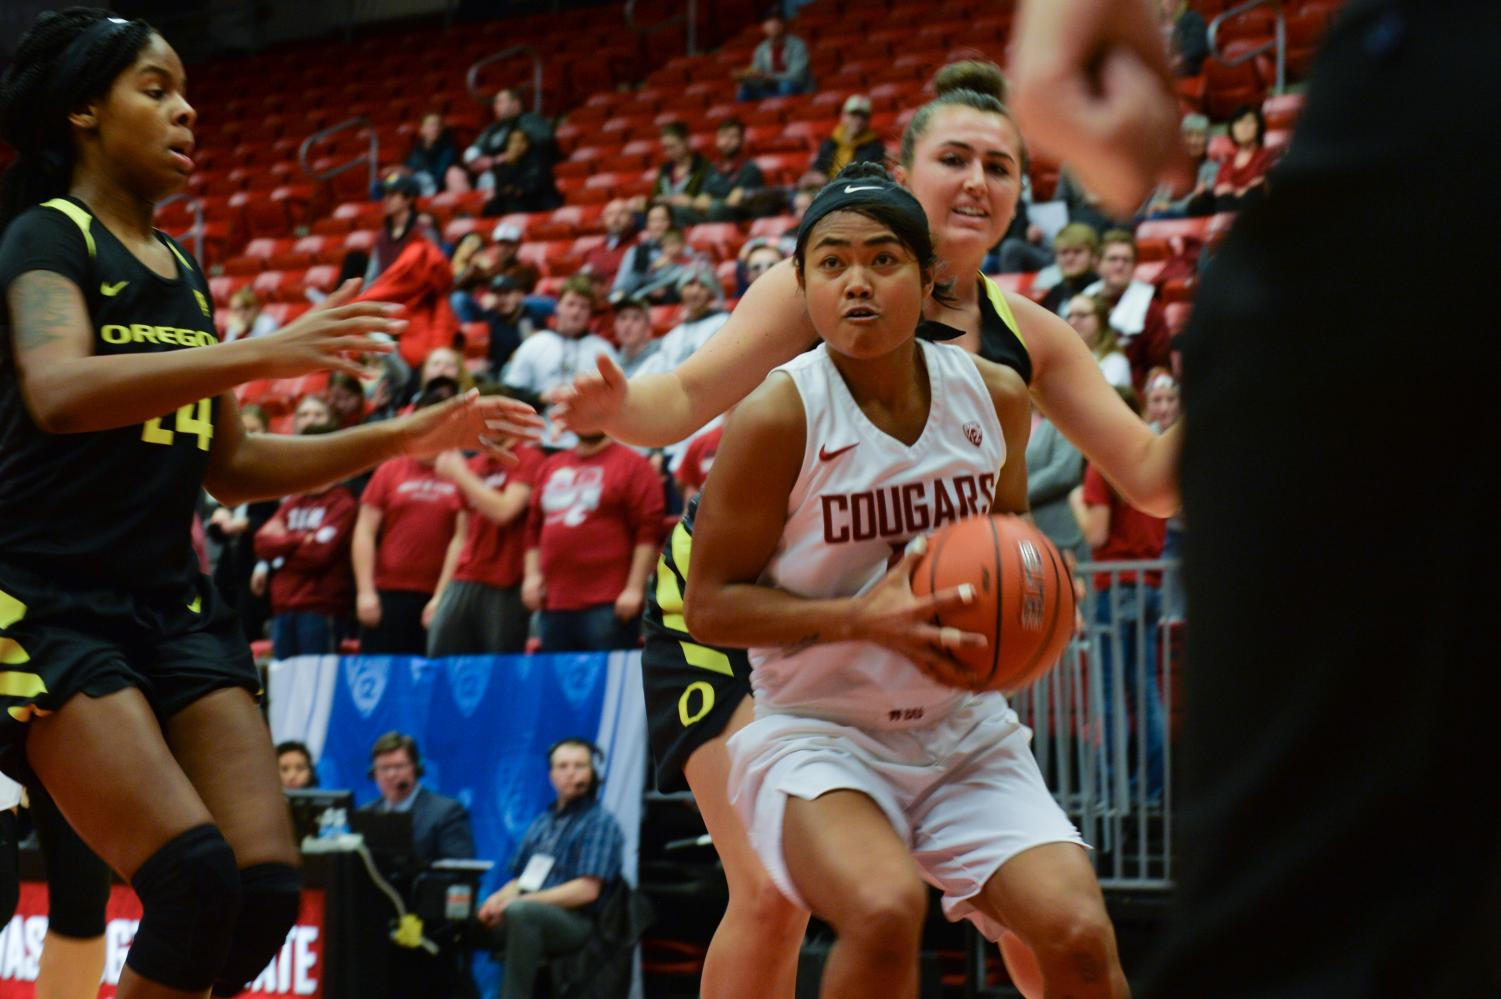 WSU junior guard, Chanelle Molina, center, looks toward the basket as she is approached by Oregon junior forward, Ruthy Hebard, left, U of O red-shirt sophomore forward, Erin Boley, during the game on Friday night at Beasley Coliseum. Cougs lost 64-79.